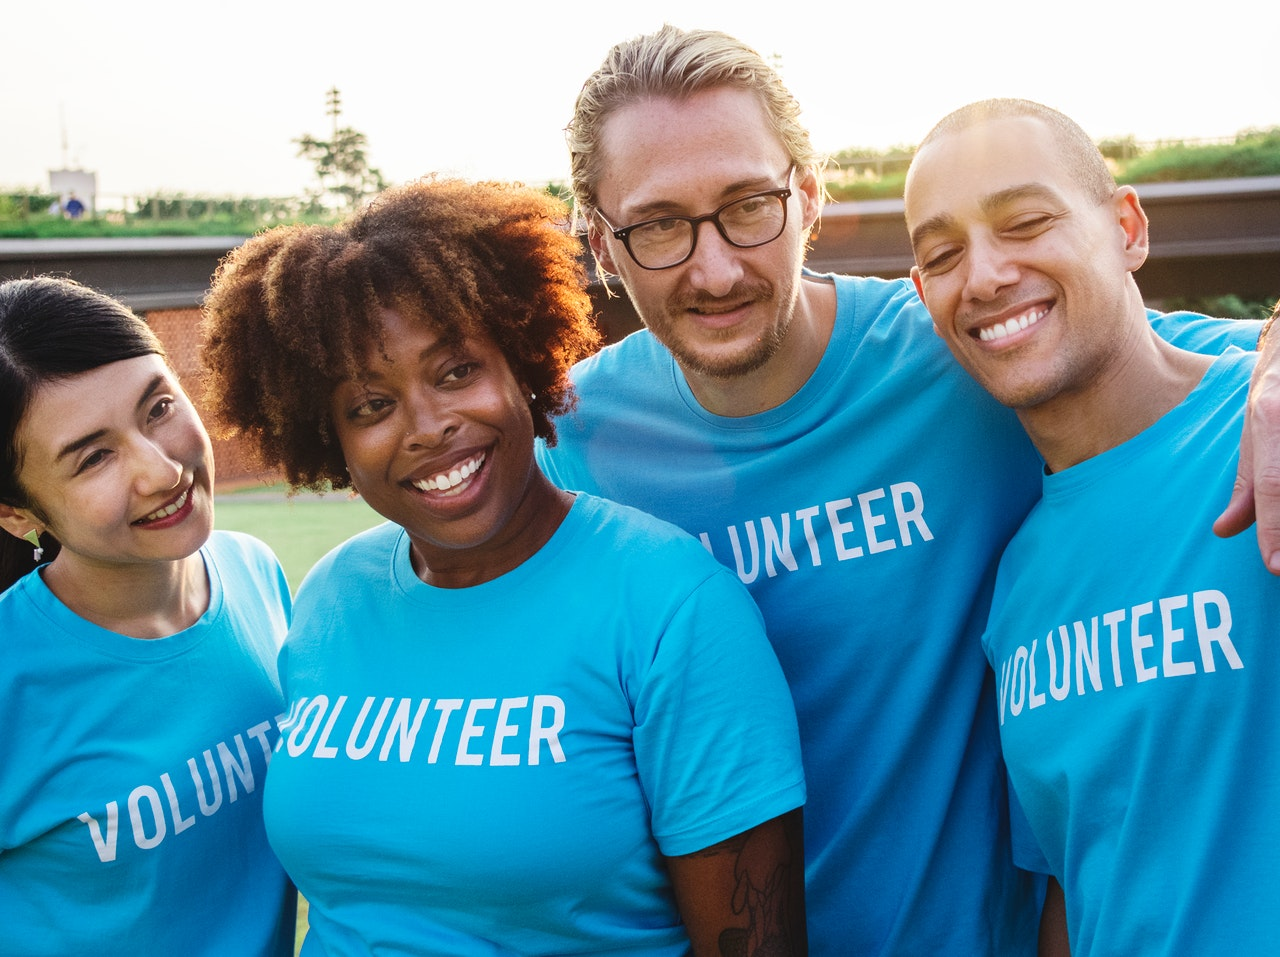 The Great Effects of Volunteering